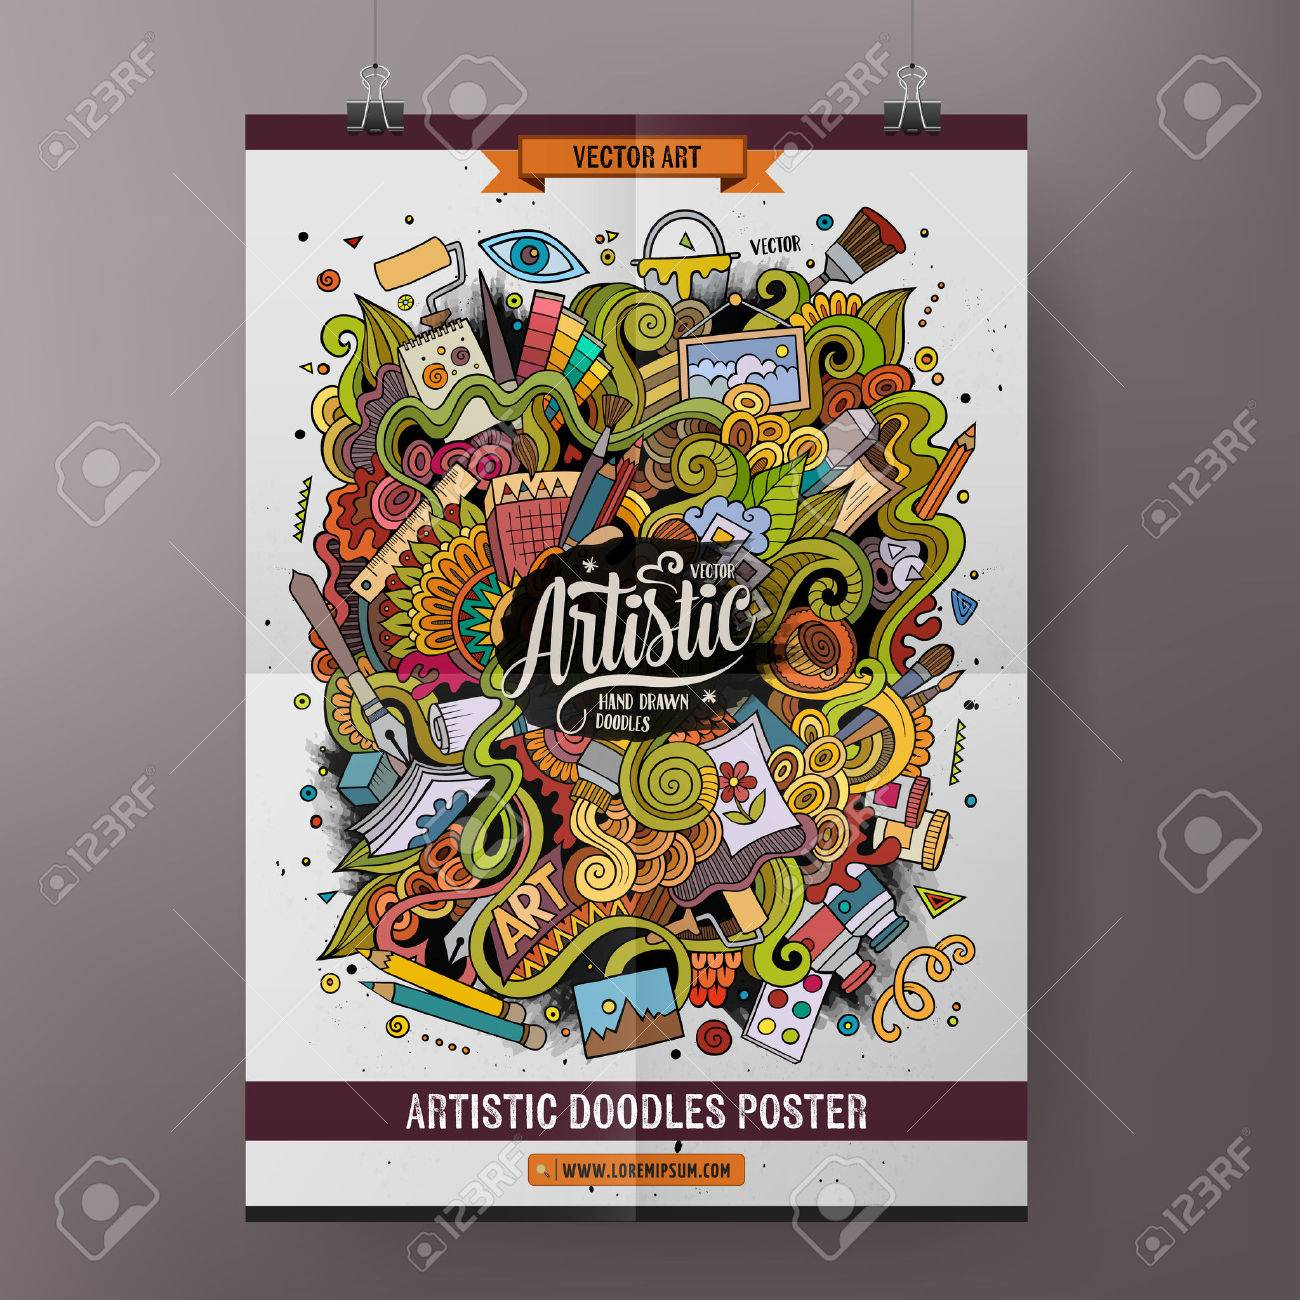 Cartoon colorful hand drawn doodles Art poster template. Very detailed, with lots of objects illustration. Funny vector artwork. Corporate identity design. - 59786394